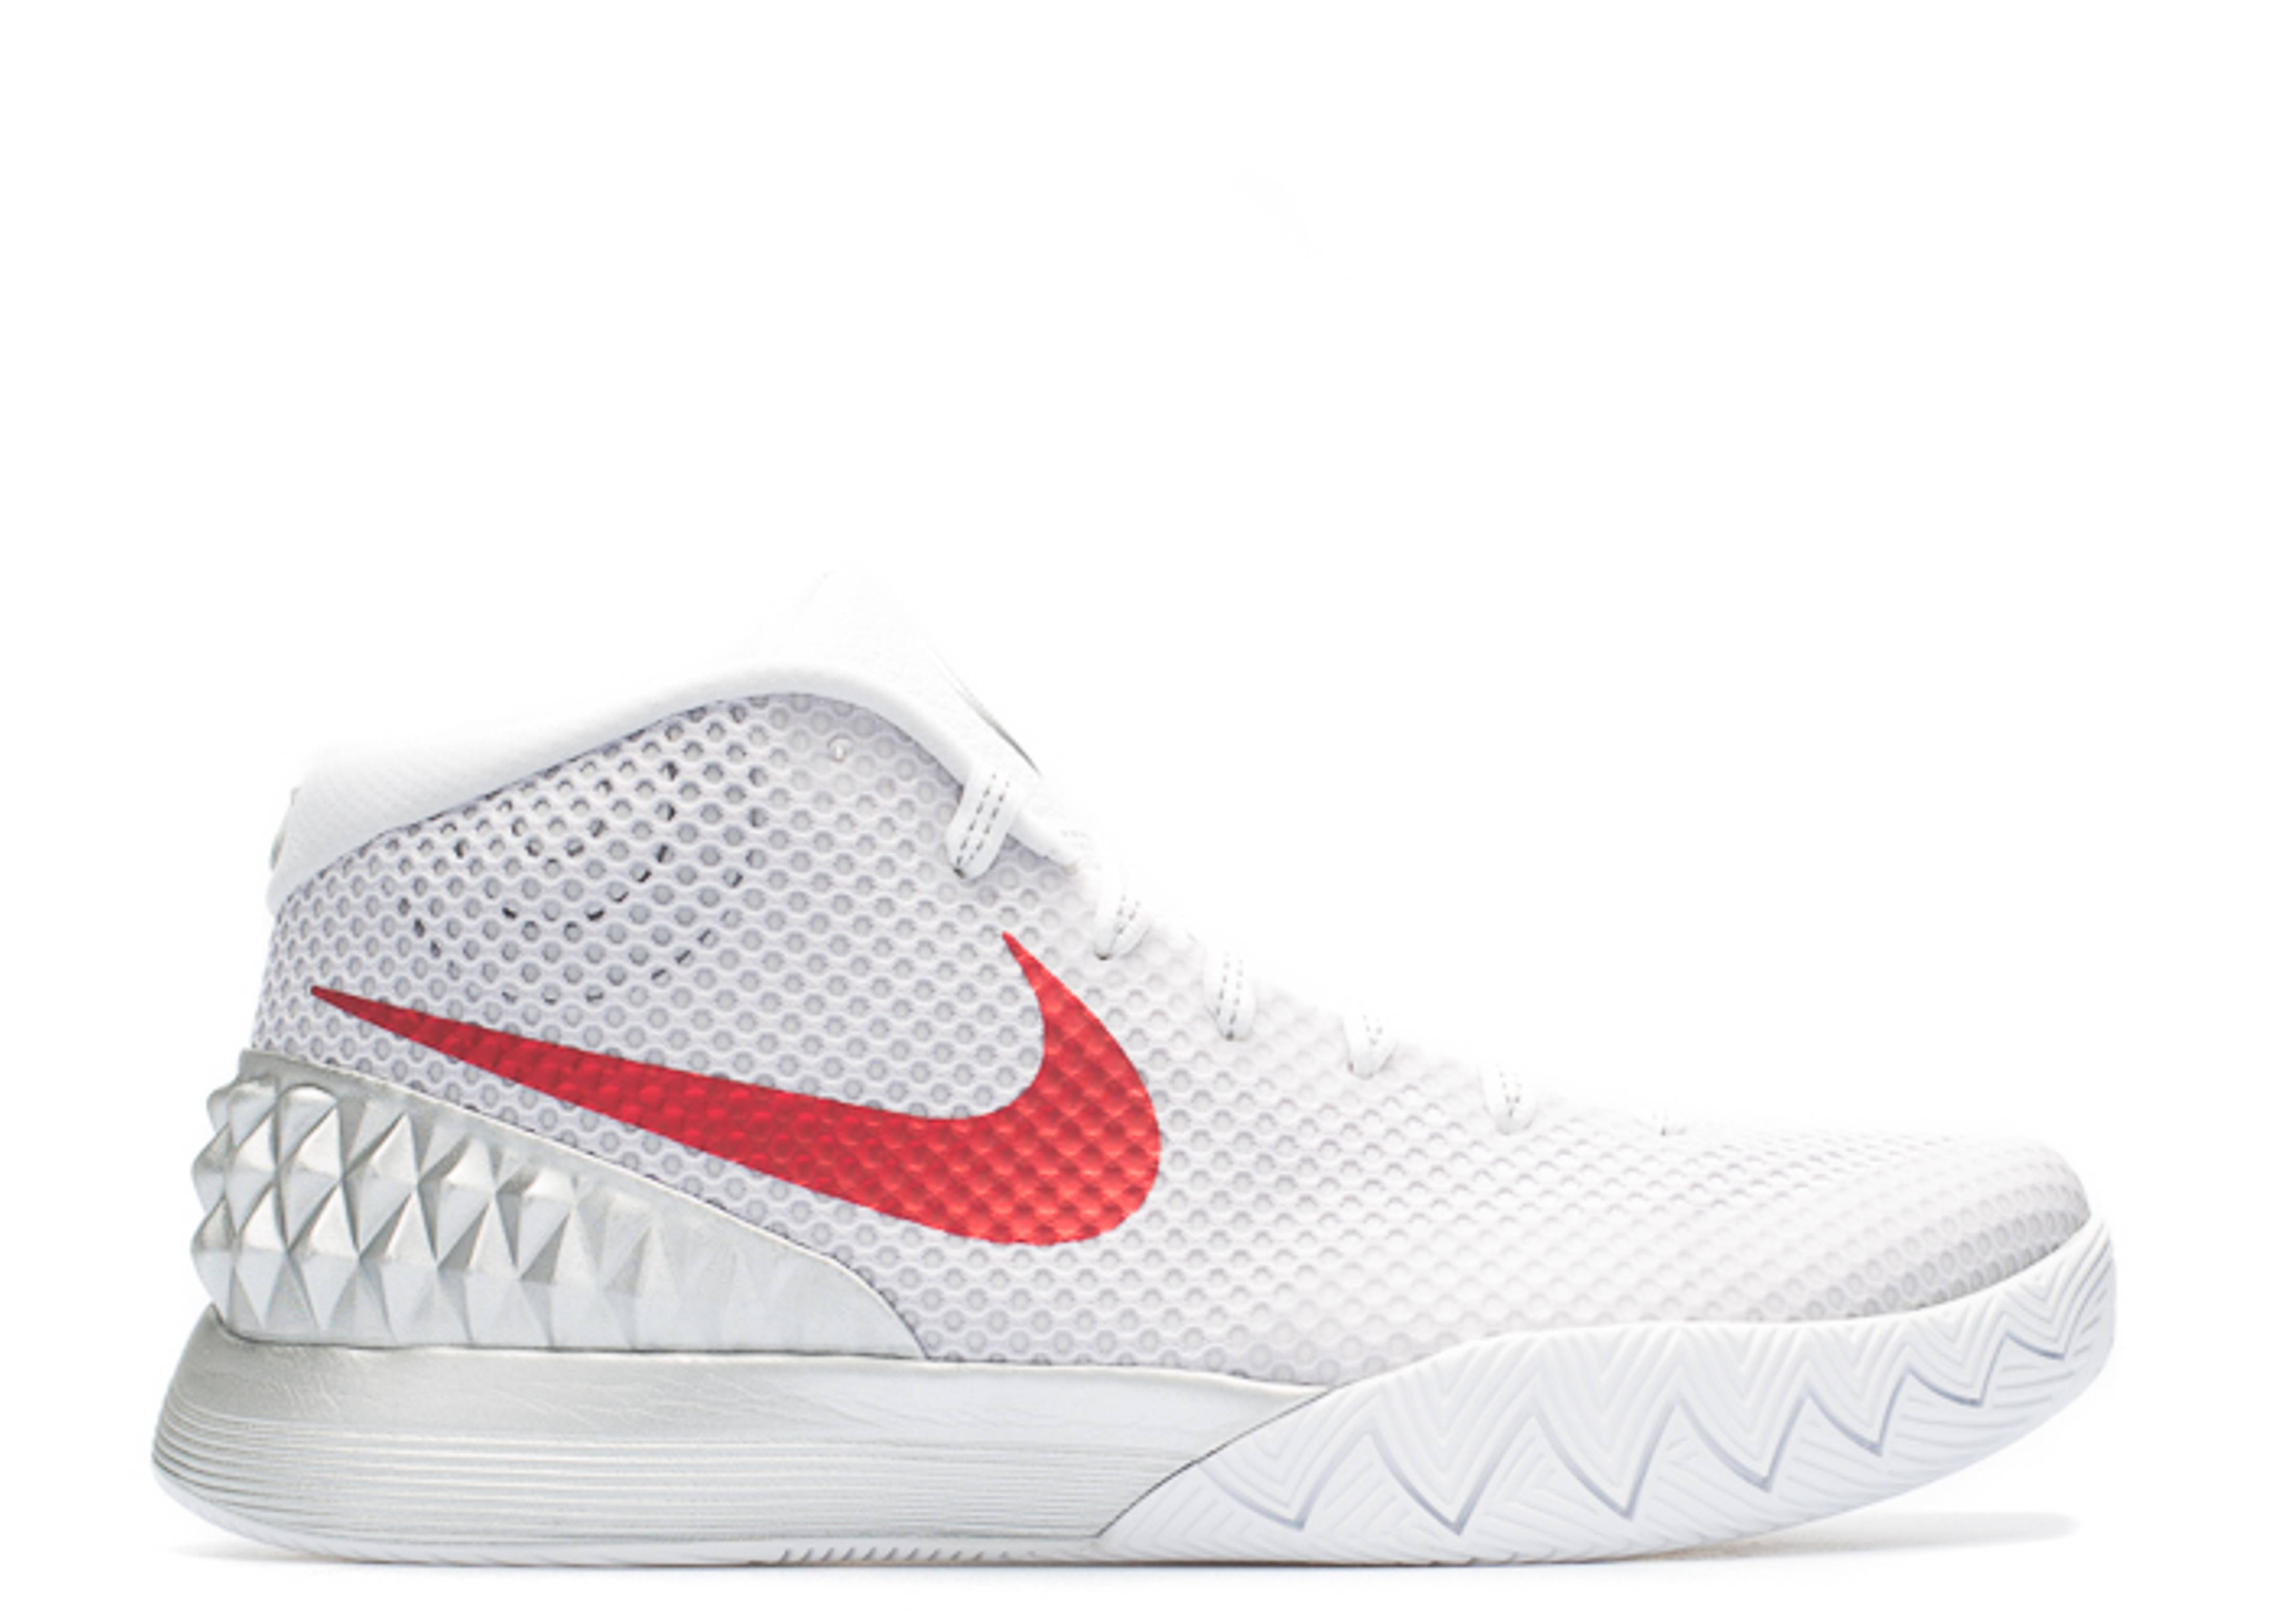 official photos 89930 96e15 Kyrie 1 'Opening Night'